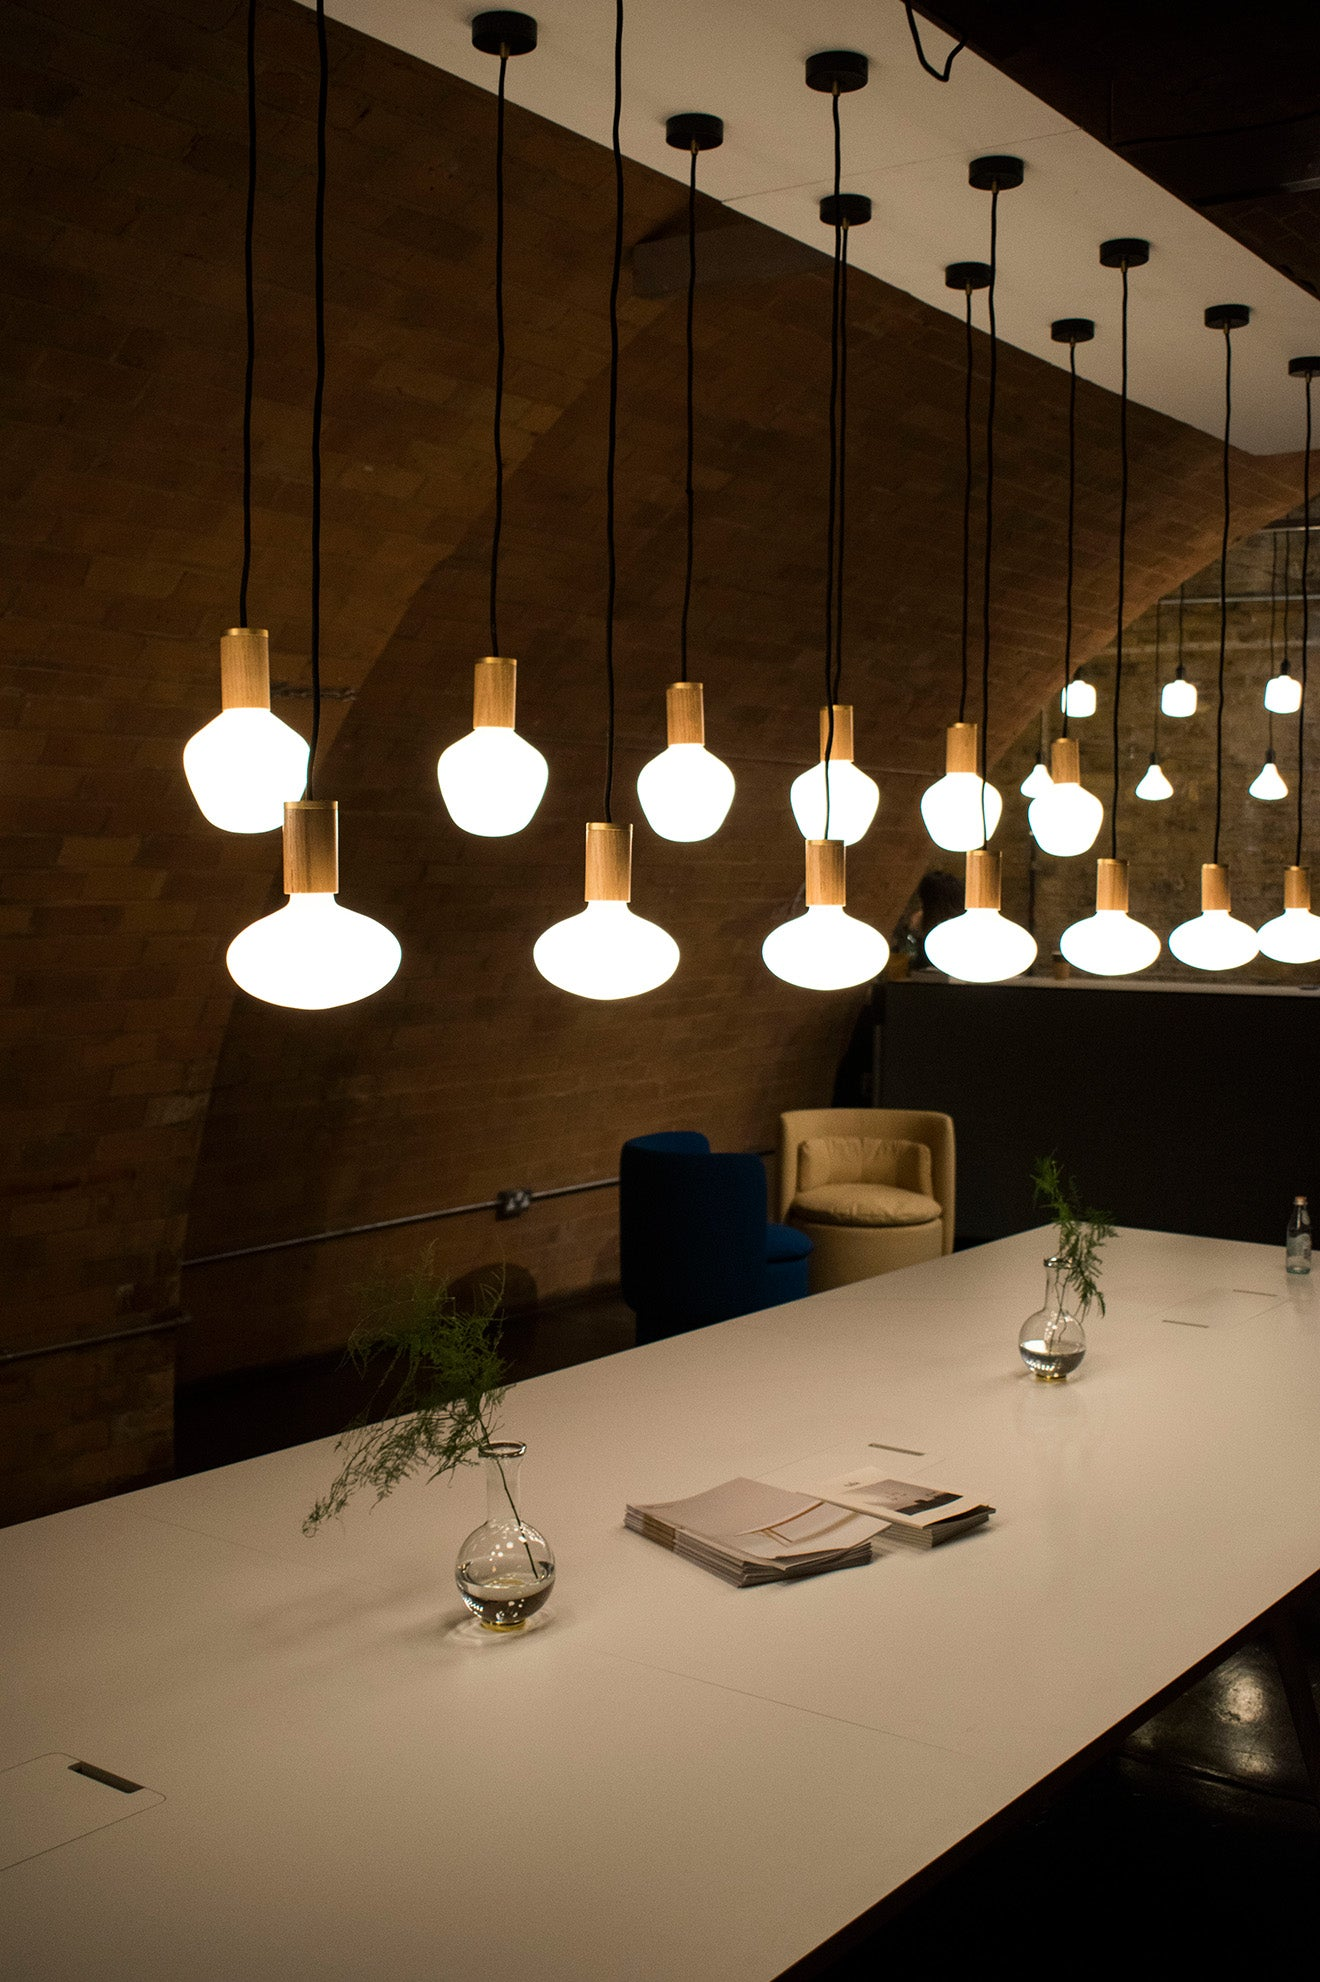 tala pendant LED lighting London Design Festival under the arches